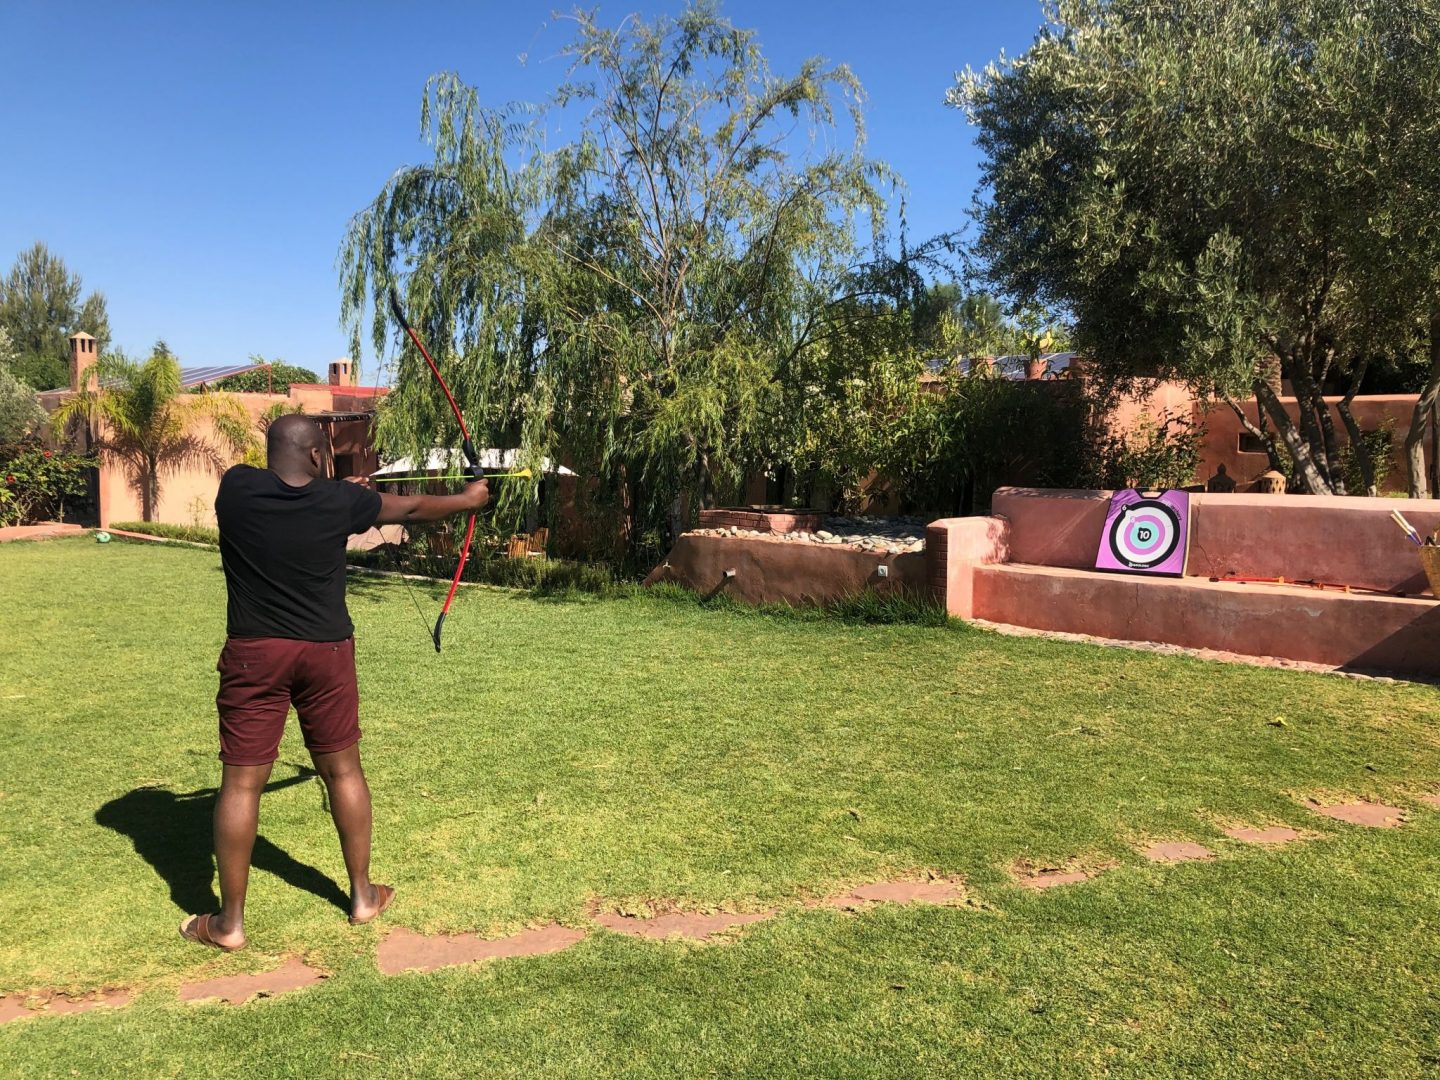 Archery : practising hunting for my food